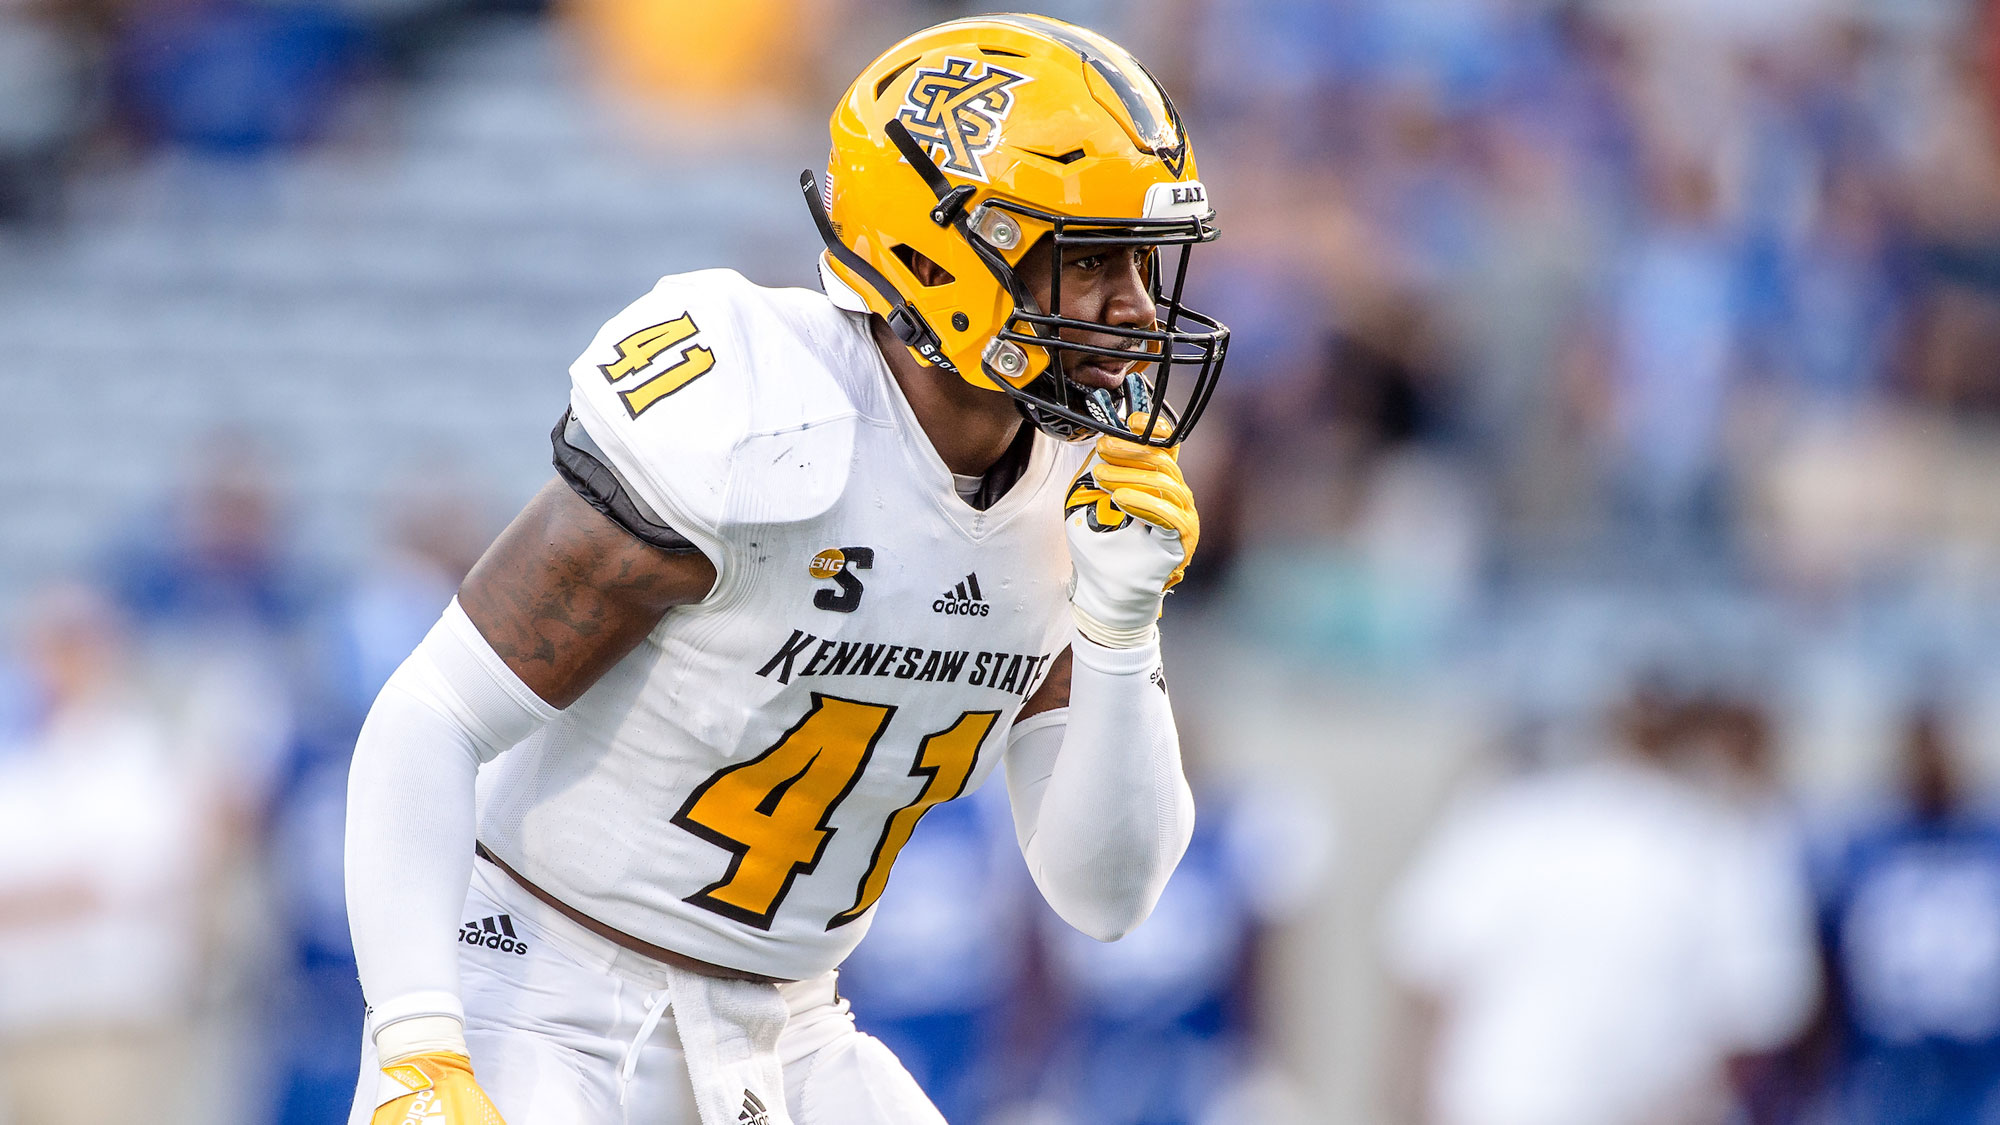 detailed look 801ee 2ac1f Anthony Gore, Jr. - Football - Kennesaw State University ...